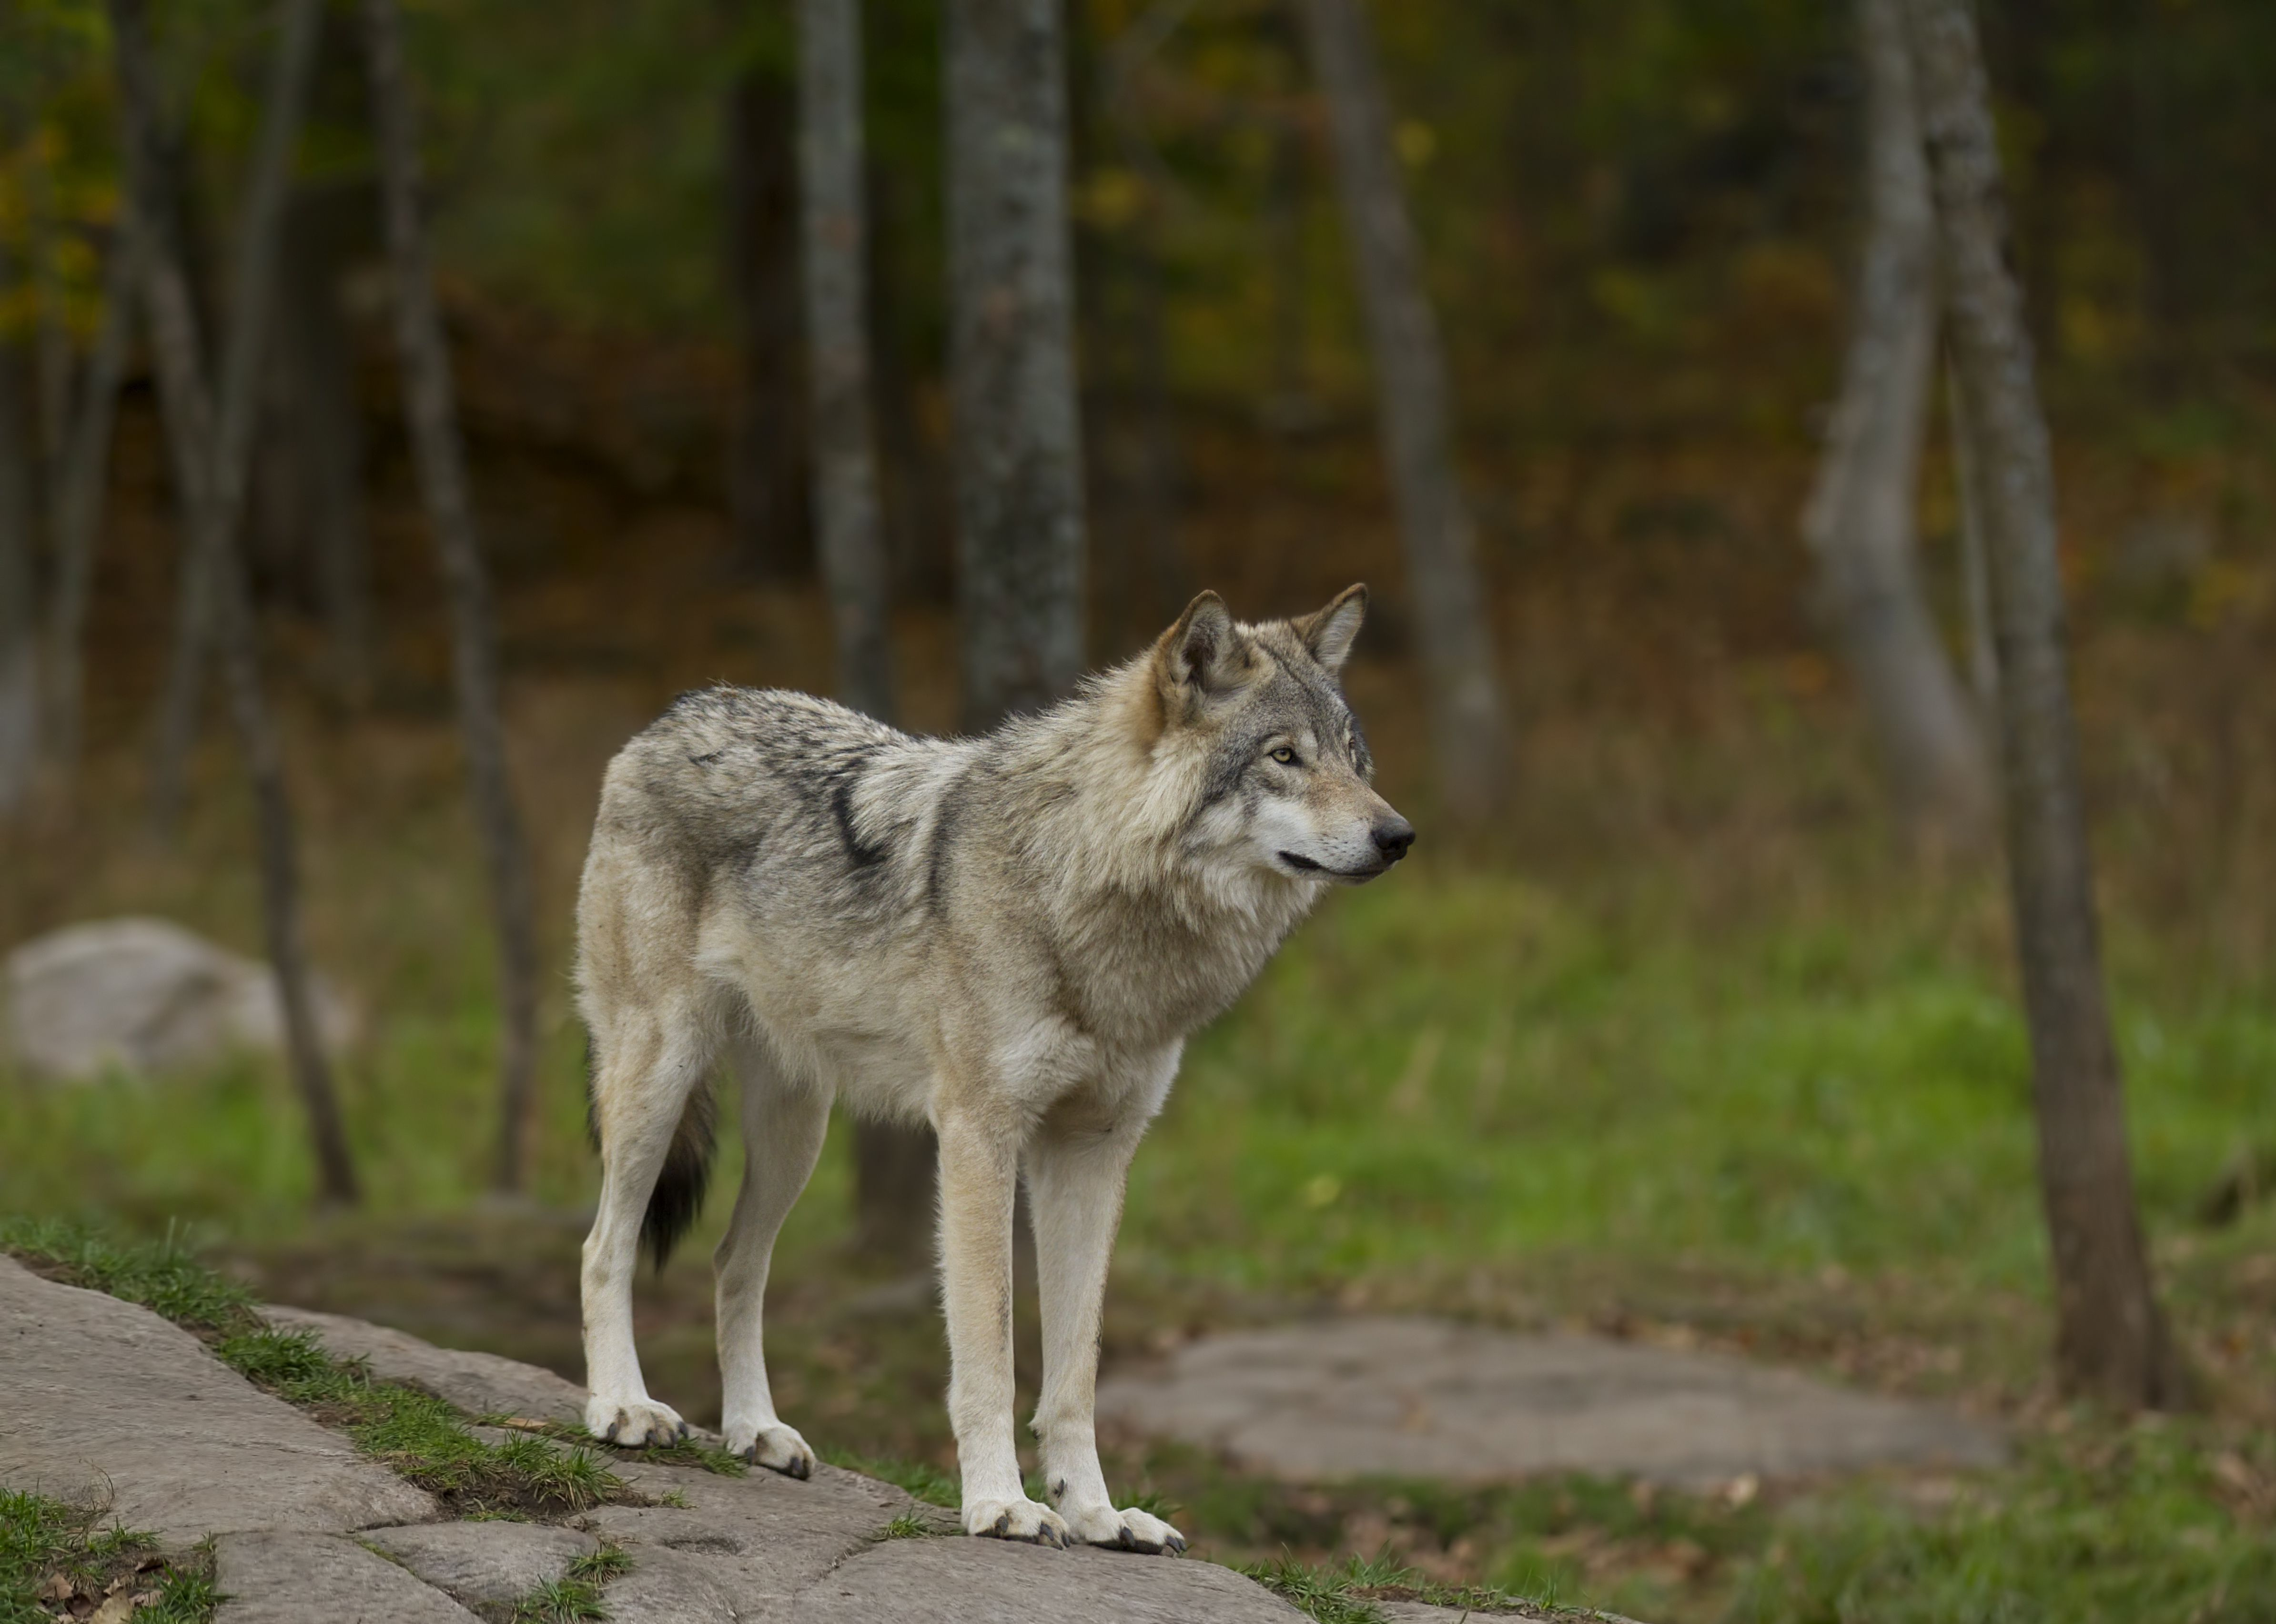 Timber wolf (Canis lupus) standing on a rocky cliff on an autumn day in Canada